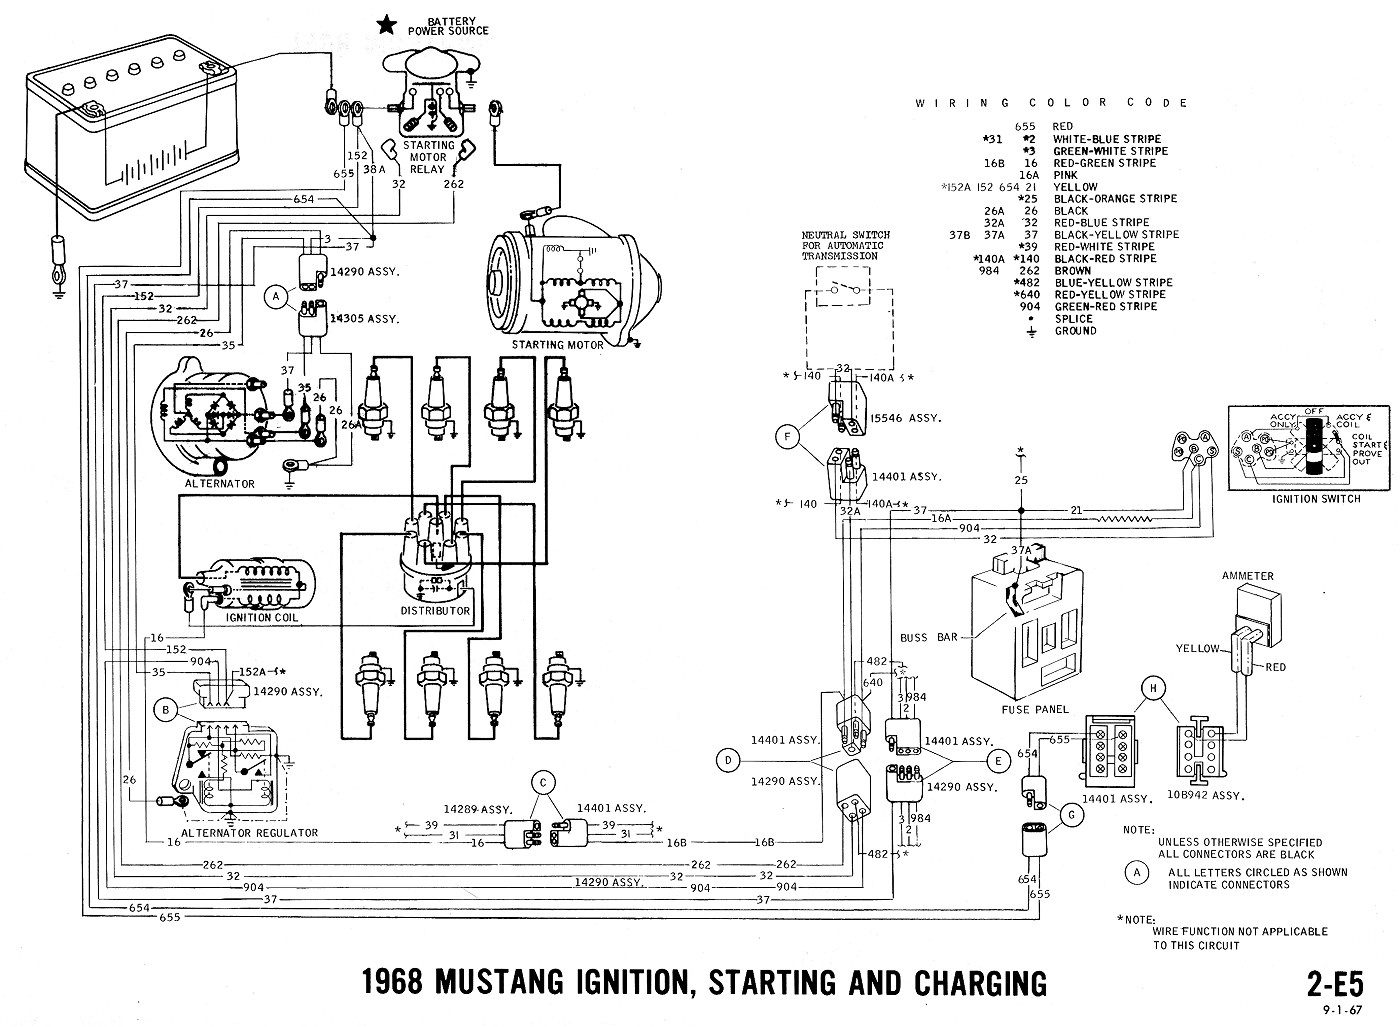 68 mustang charging wiring diagram schematic wiring diagrams u2022 rh detox design co 1966 mustang complete wiring harness 1966 mustang wiring harness clips